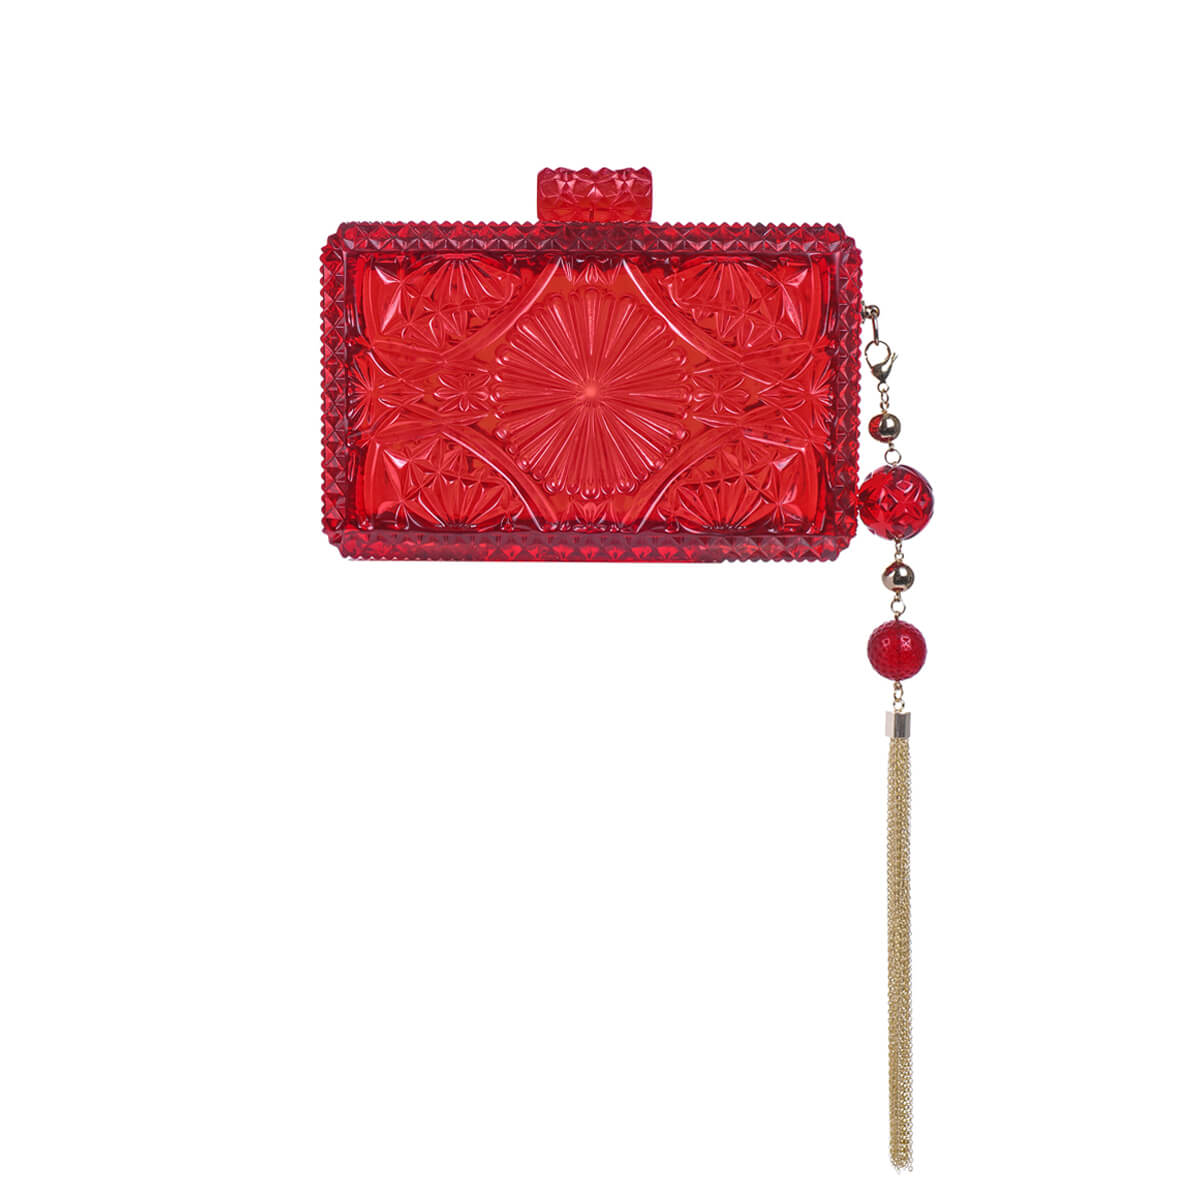 handmade vintage cut glass inspired clutch in burgundy red